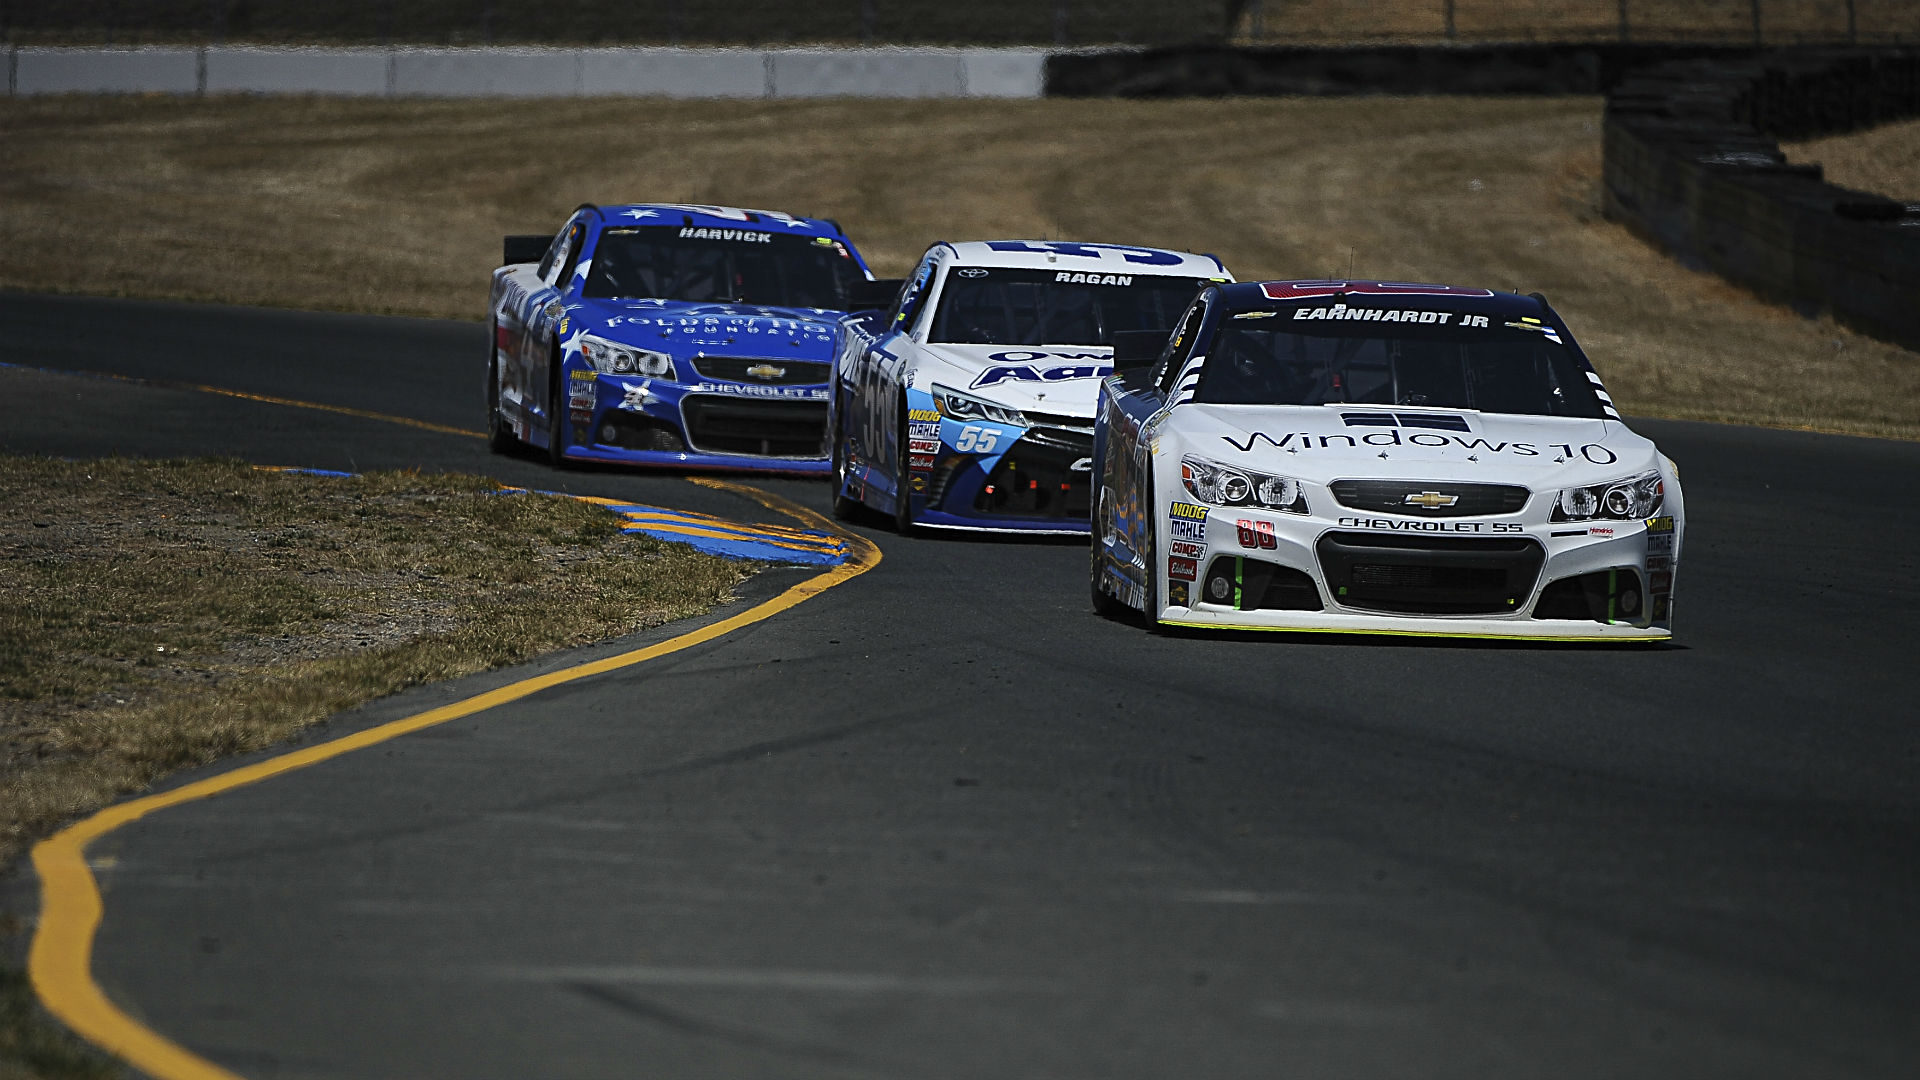 nascar at sonoma: tv schedule, dates, times, qualifying drivers for